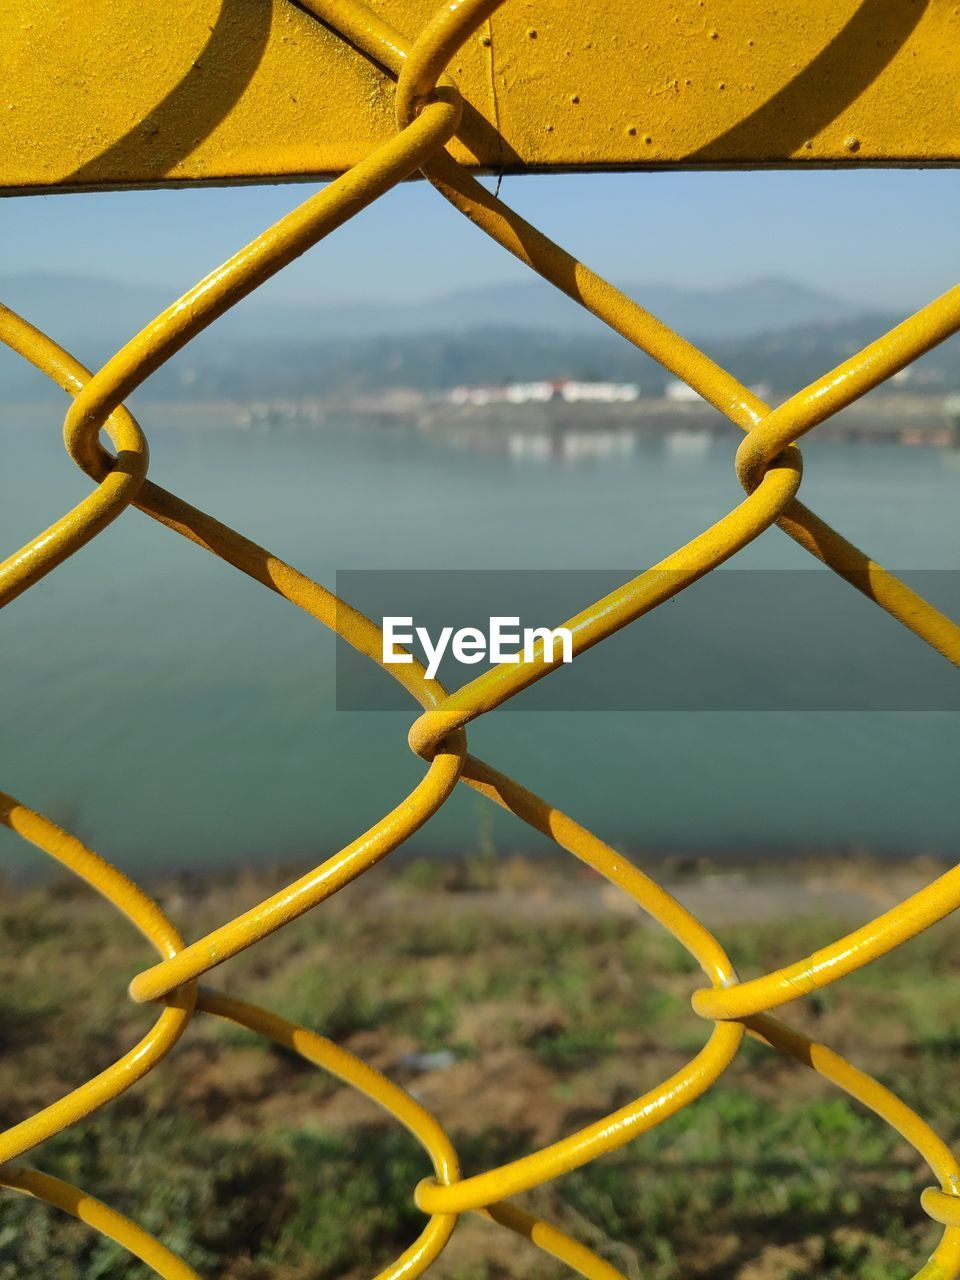 River seen through chainlink fence